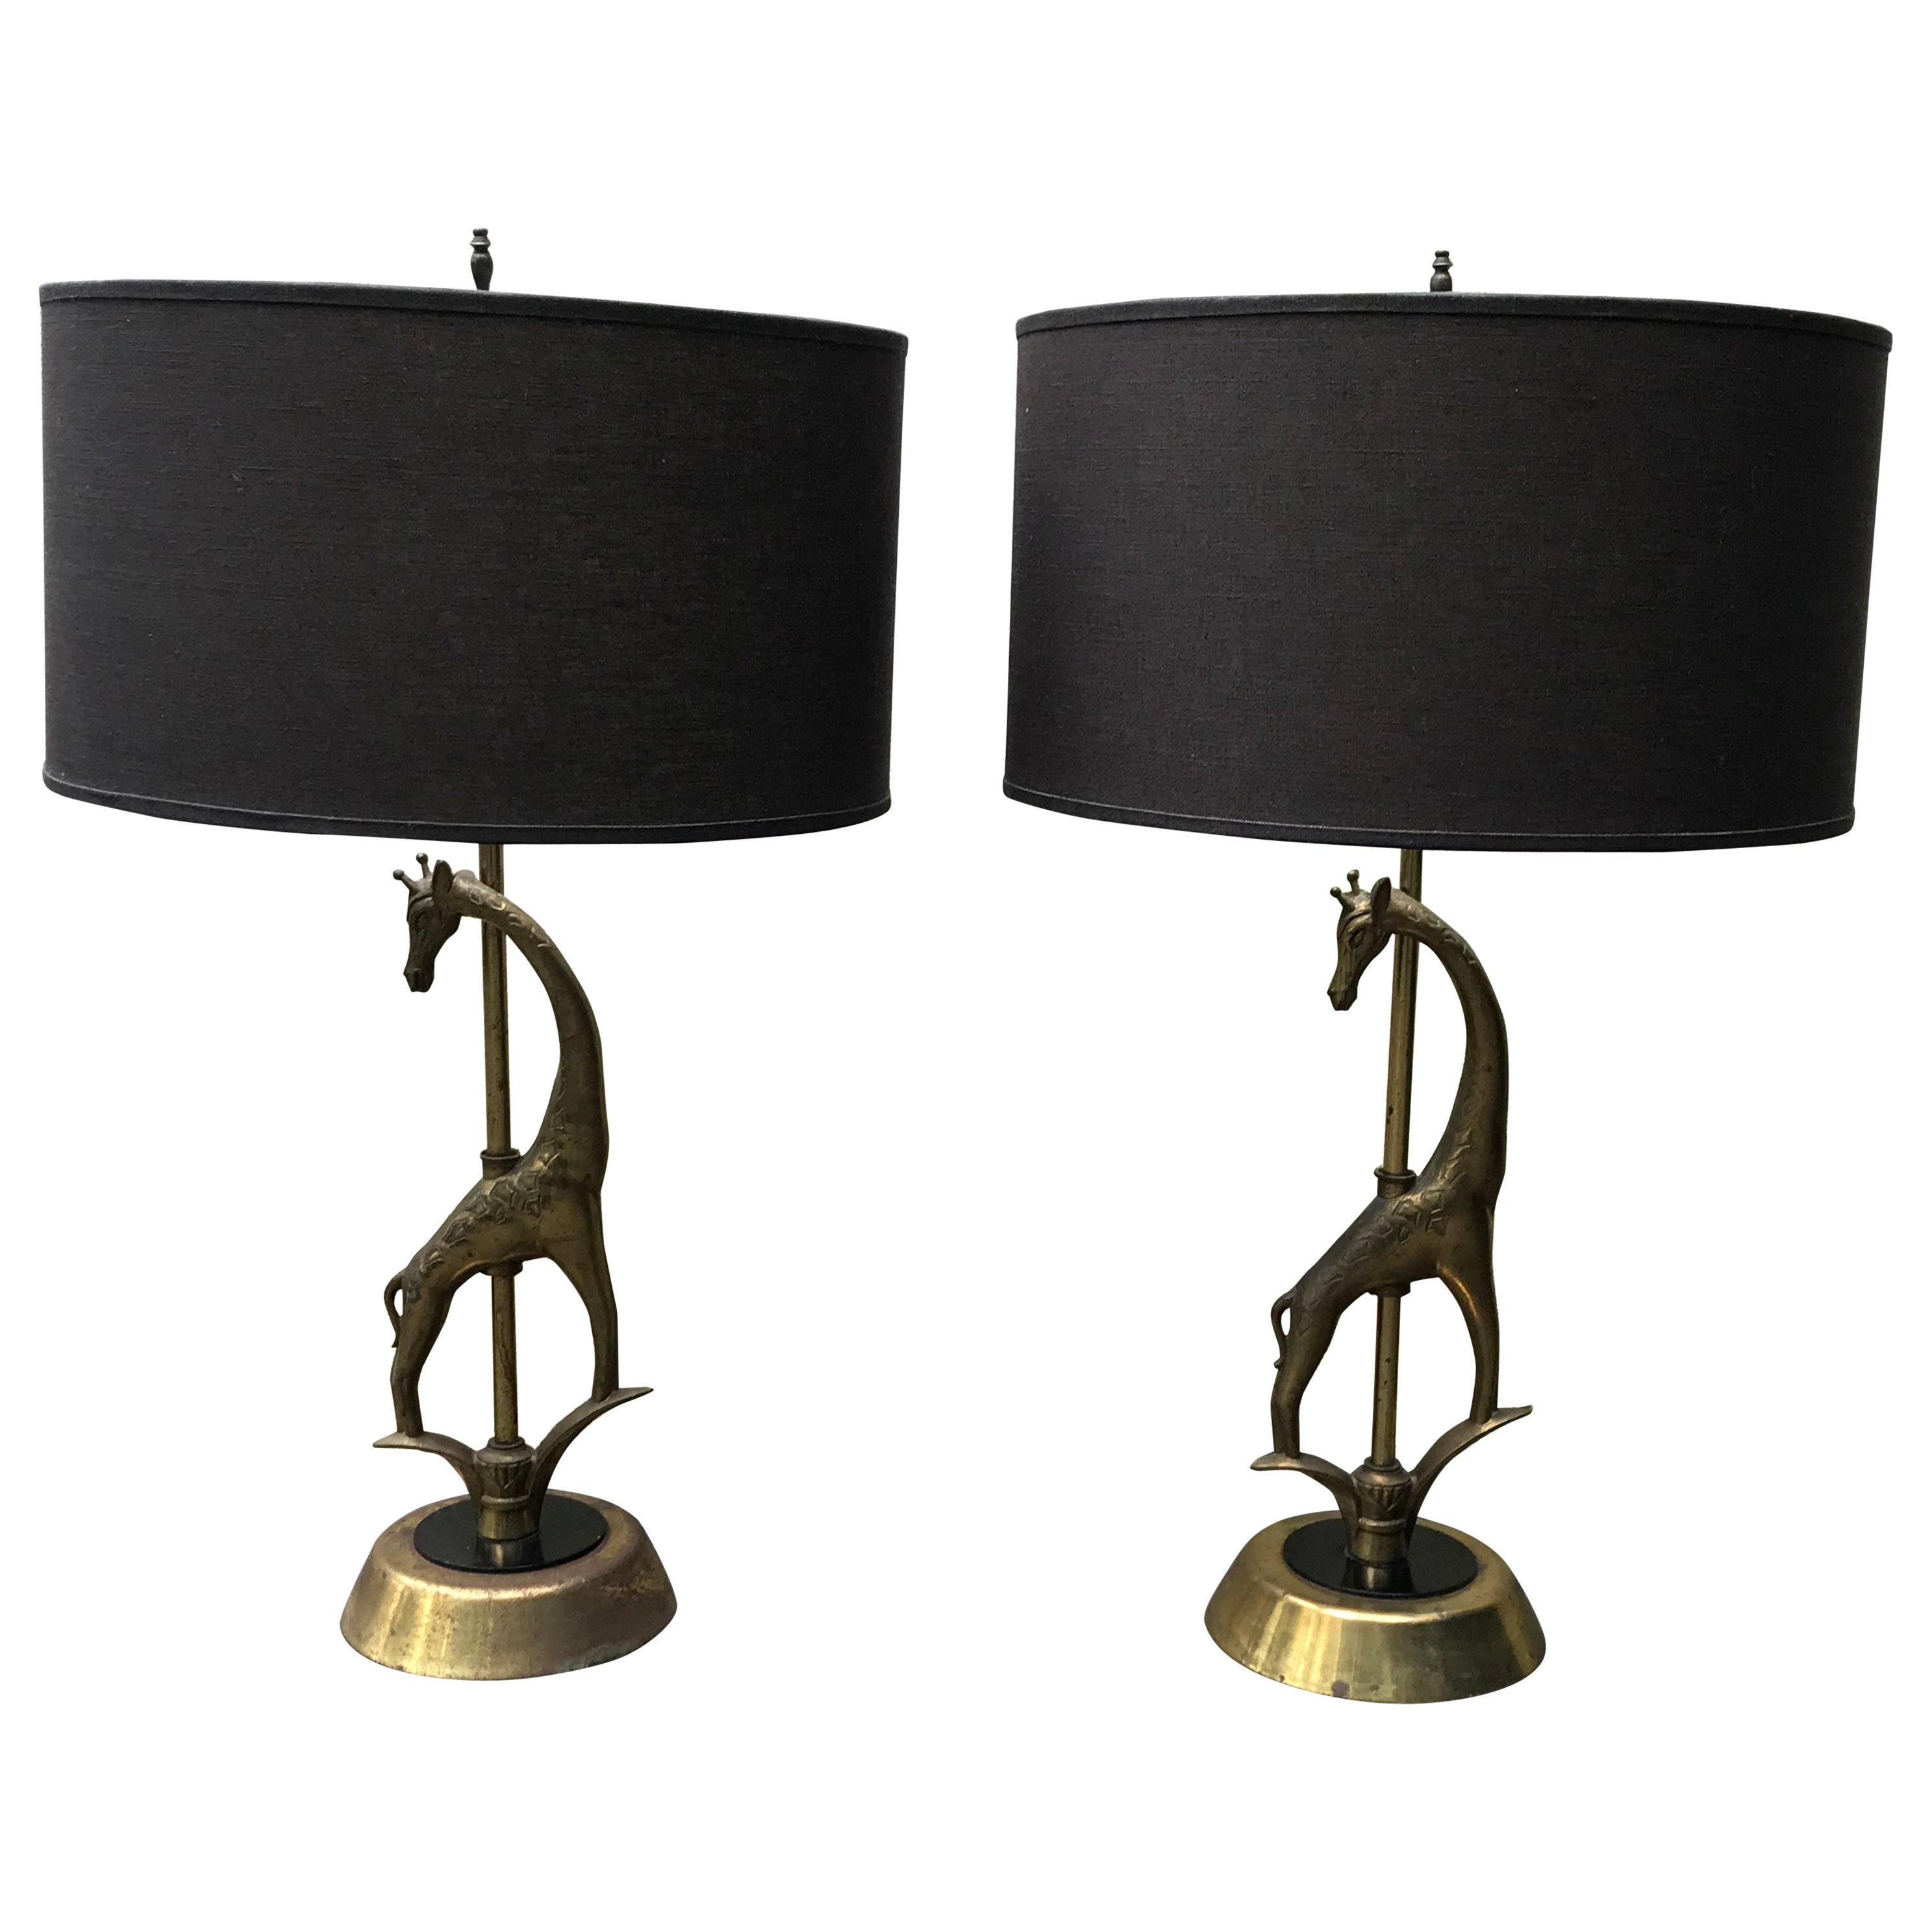 Pair of Mid Century Sculptural Giraffe Table Lamps by Rembrandt Lamp Co. 1950s